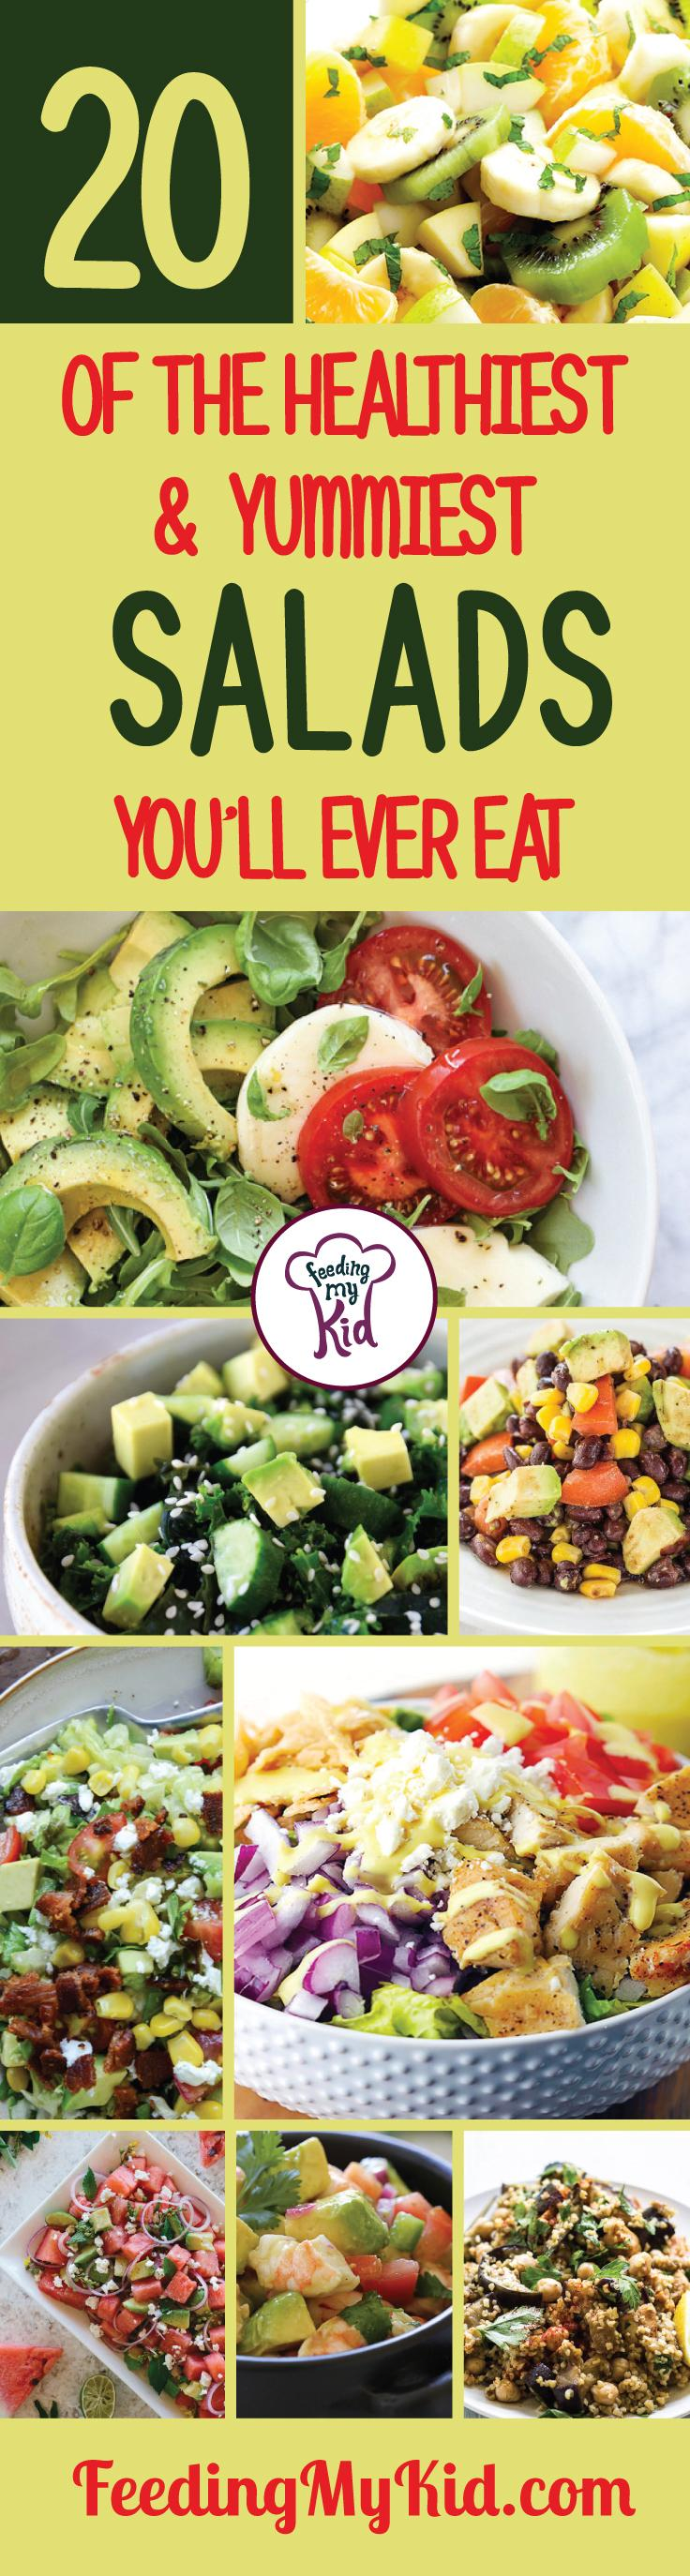 Try some of these amazing easy salad recipes to make right at home! They're perfectly delicious. Feeding My Kid is filled with all the information you need about how to raise your kids, from healthy tips to nutritious recipes. #FeedingMyKid #easysalad #saladrecipes #recipes #dinner